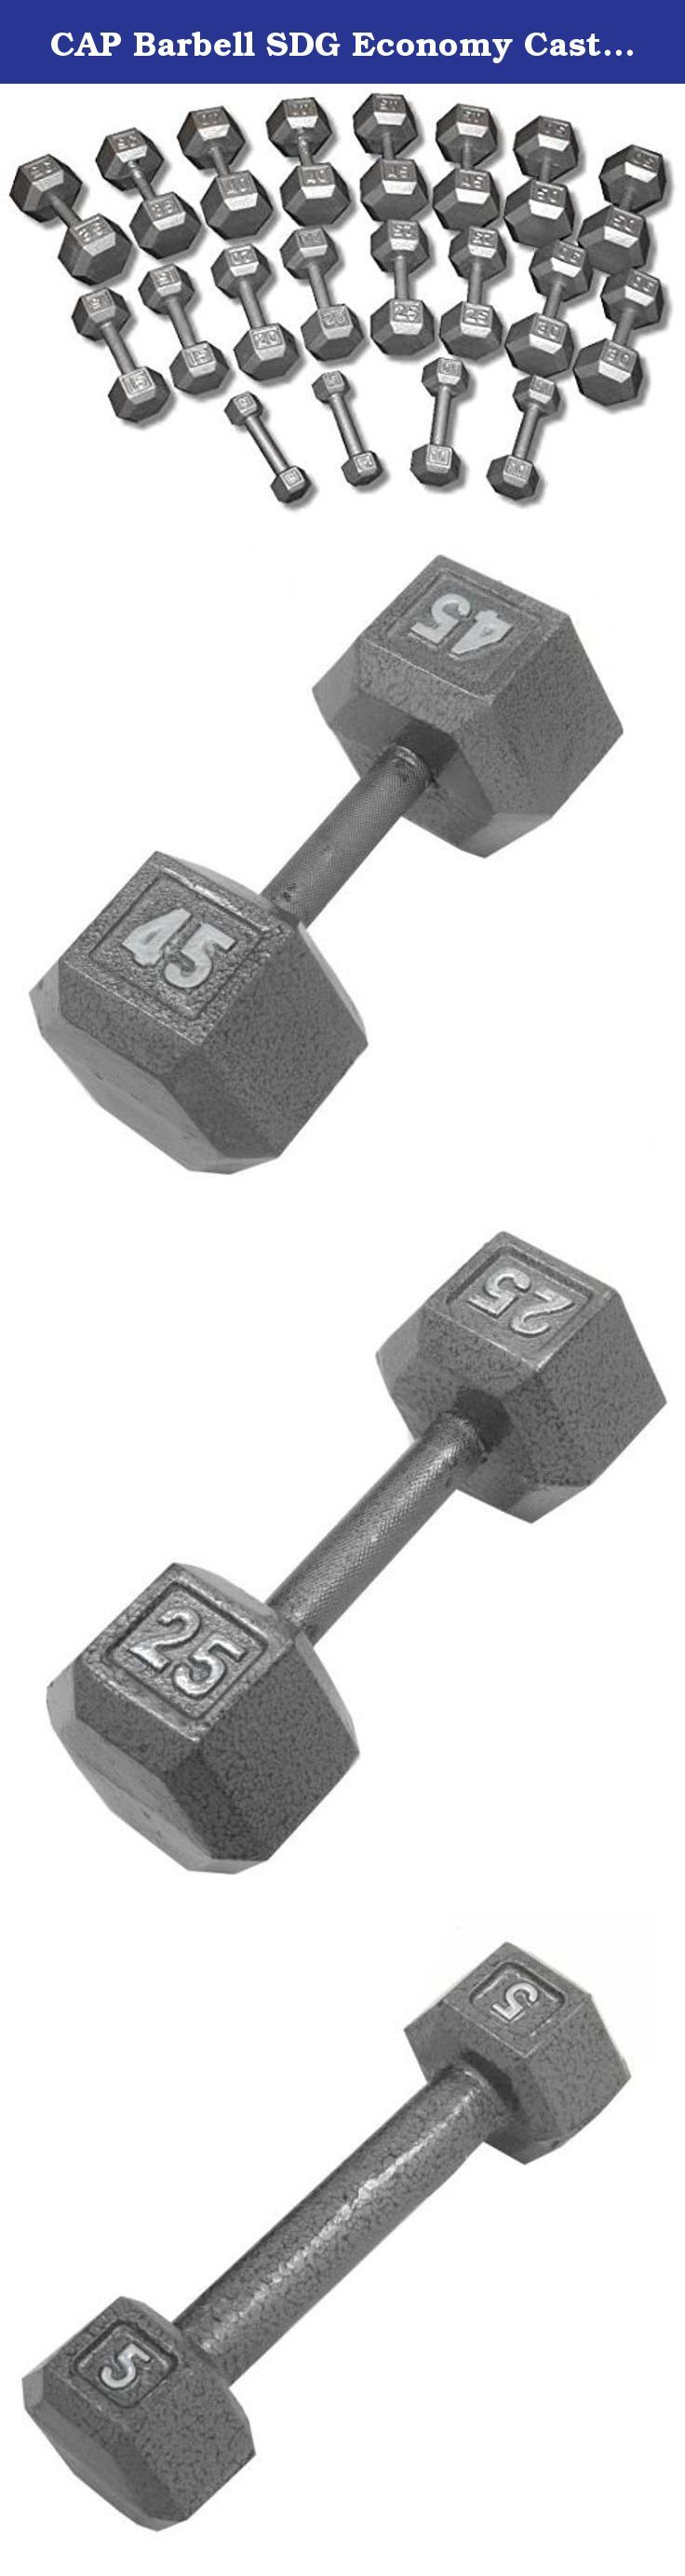 CAP Barbell SDG Economy Cast Iron Hex Dumbbell Set - 5 to 50 lbs (10 pairs) - Garage Gym Weight Set. Economy Cast Iron Hex Dumbbell Sets from CAP Barbell - Hex dumbbell sets are often the perfect dumbbell choice for home gym and garage gym use. They are economical and space efficient and for a lot of people that is the most important criteria when purchasing dumbbells for home use. Hexagonal dumbbell heads are non-rolling when set down on the floor or racks. Cast iron heads increase in…